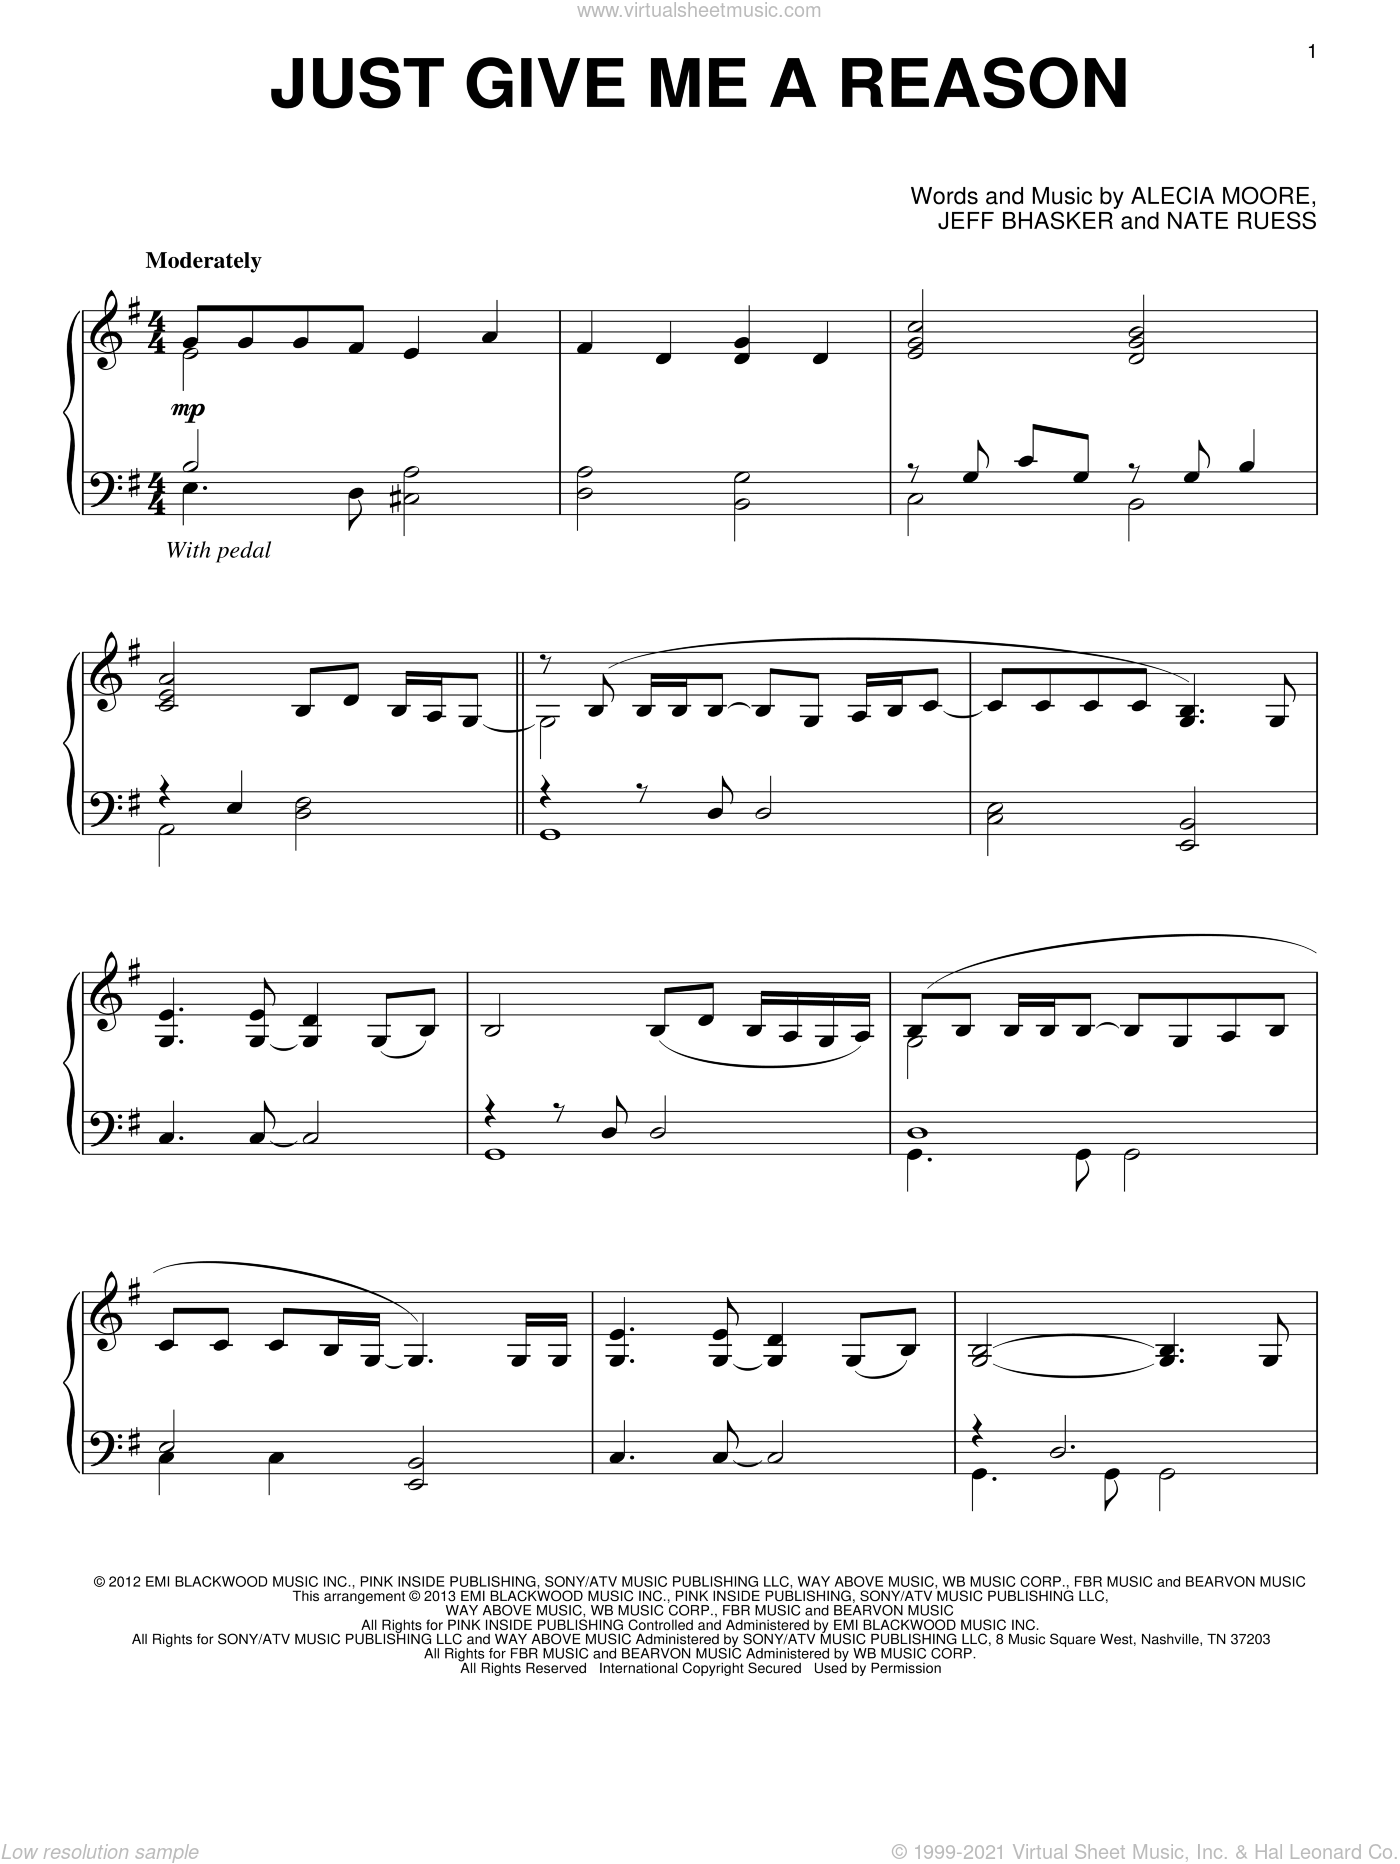 Just Give Me A Reason sheet music for piano solo by Pink featuring Nate Ruess, intermediate piano. Score Image Preview.